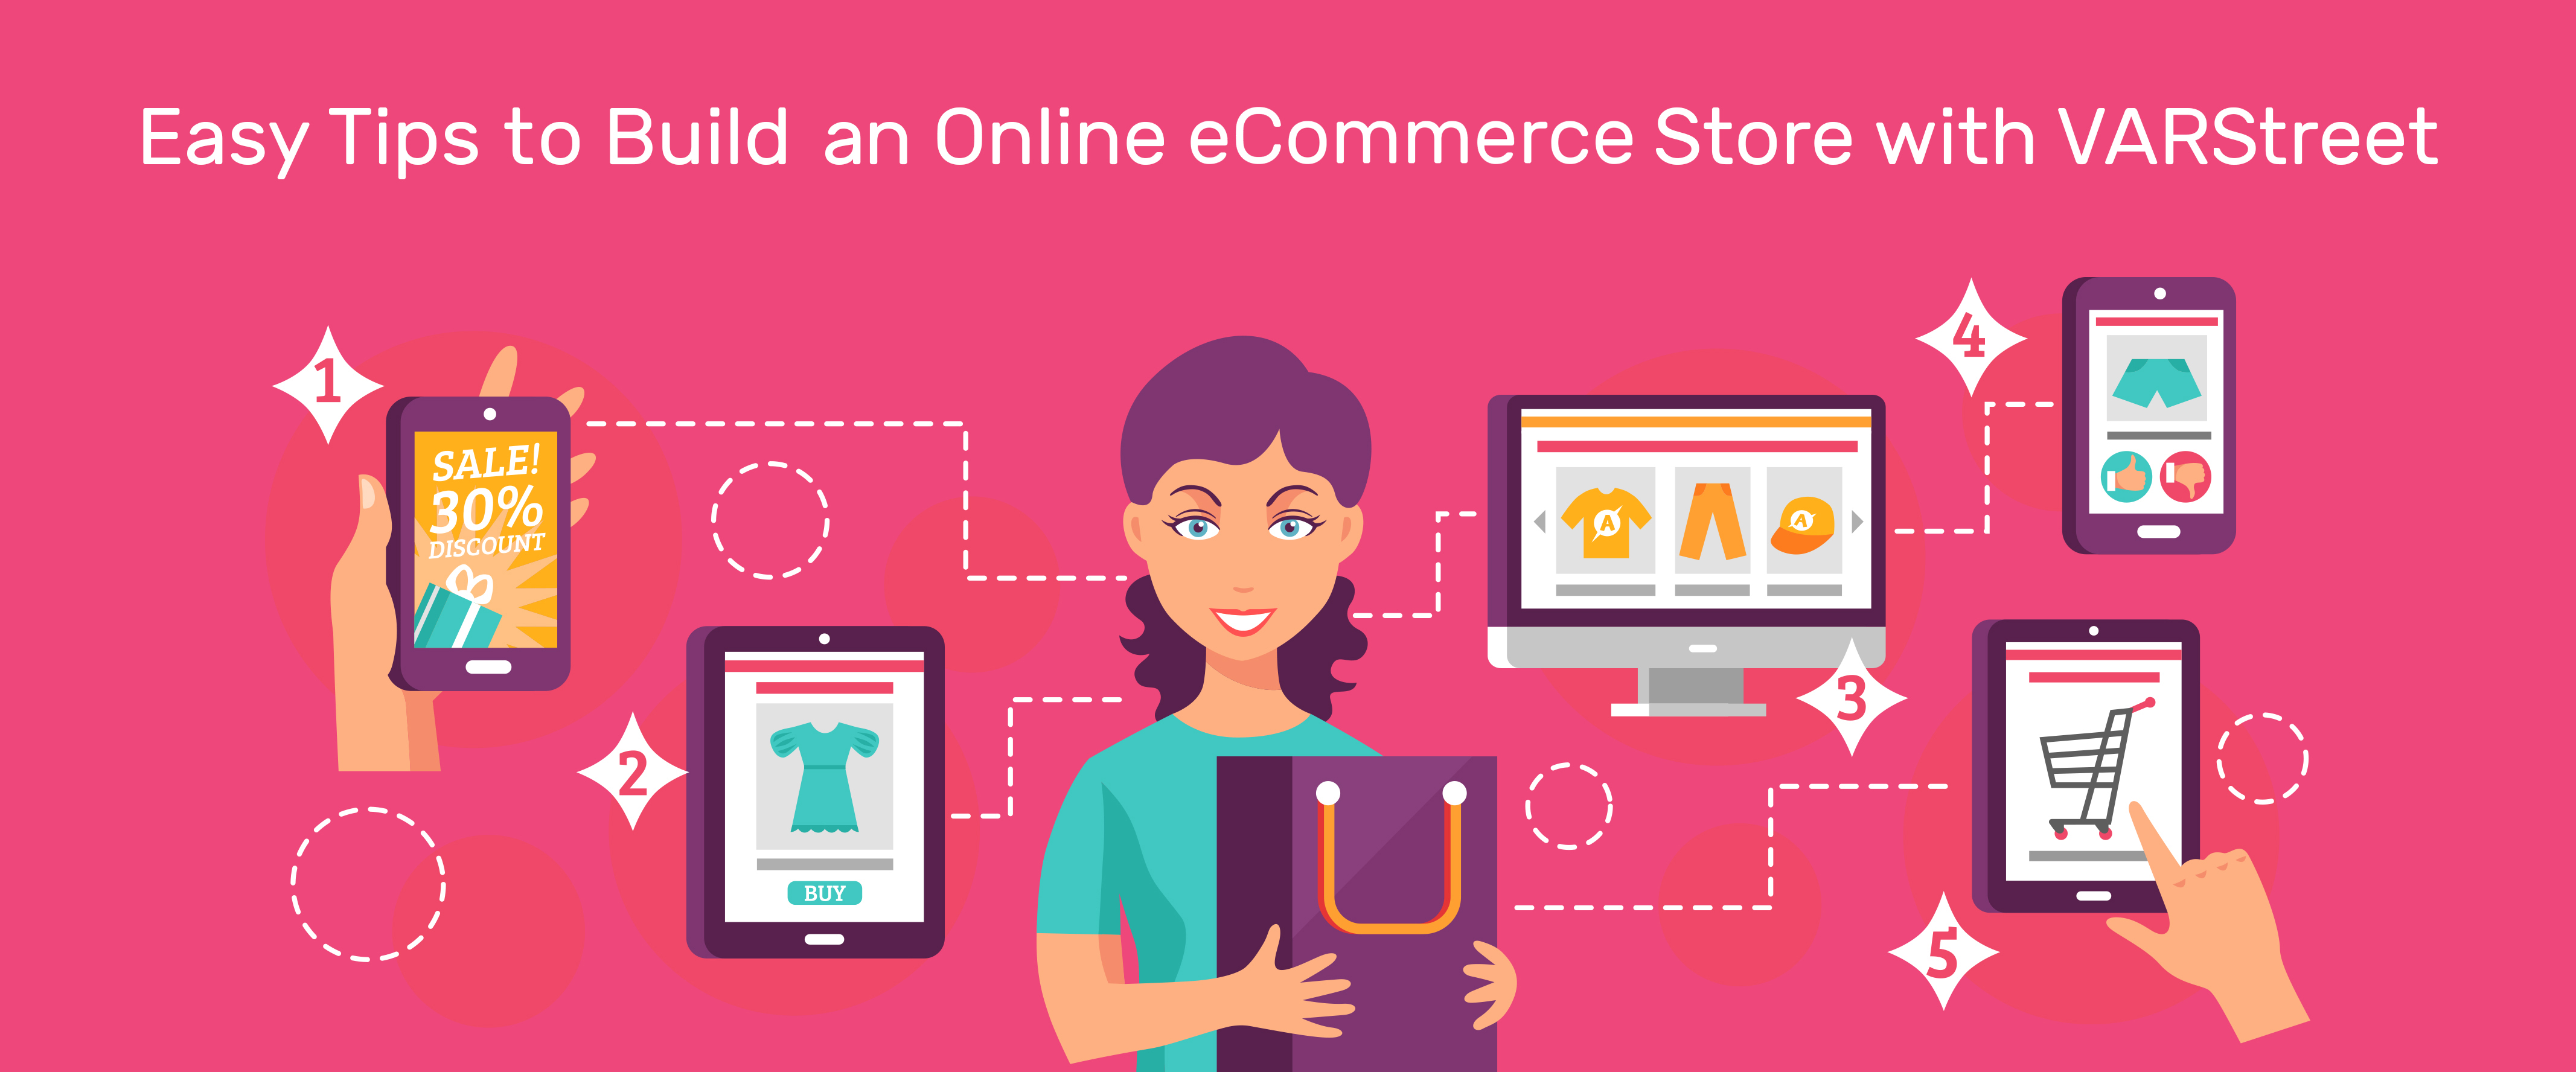 Easy Tips to Build an Online eCommerce Store with VARStreet